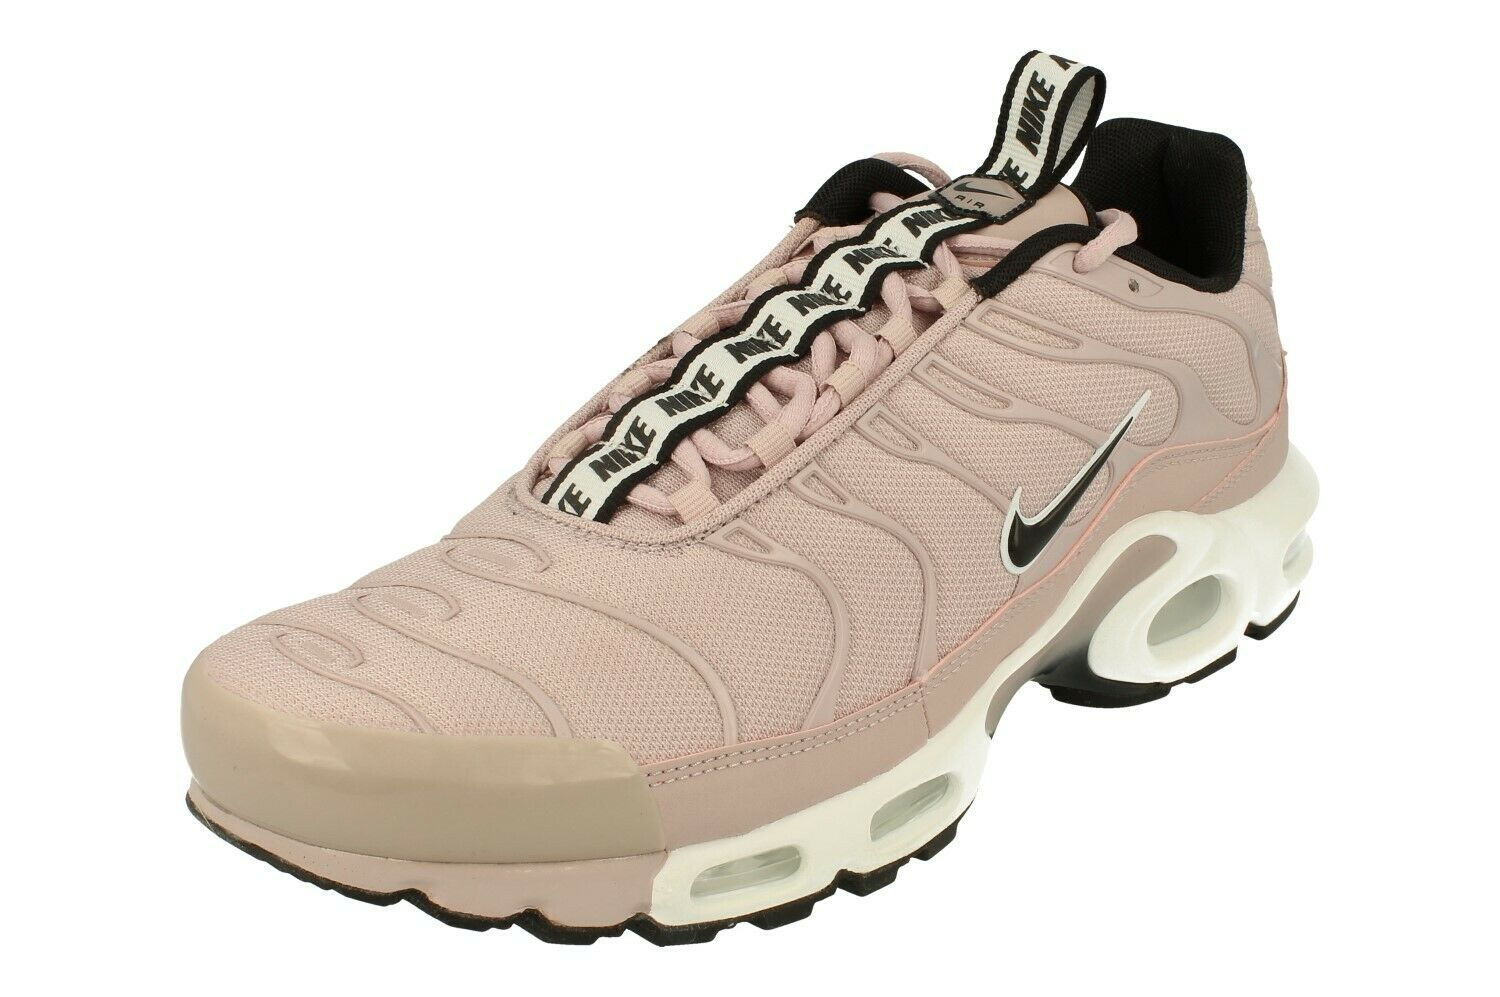 Nike Air Max Plus Tn Se Mens Running Trainers Trainers Trainers Aq4128 Sneakers shoes 600 078dfd